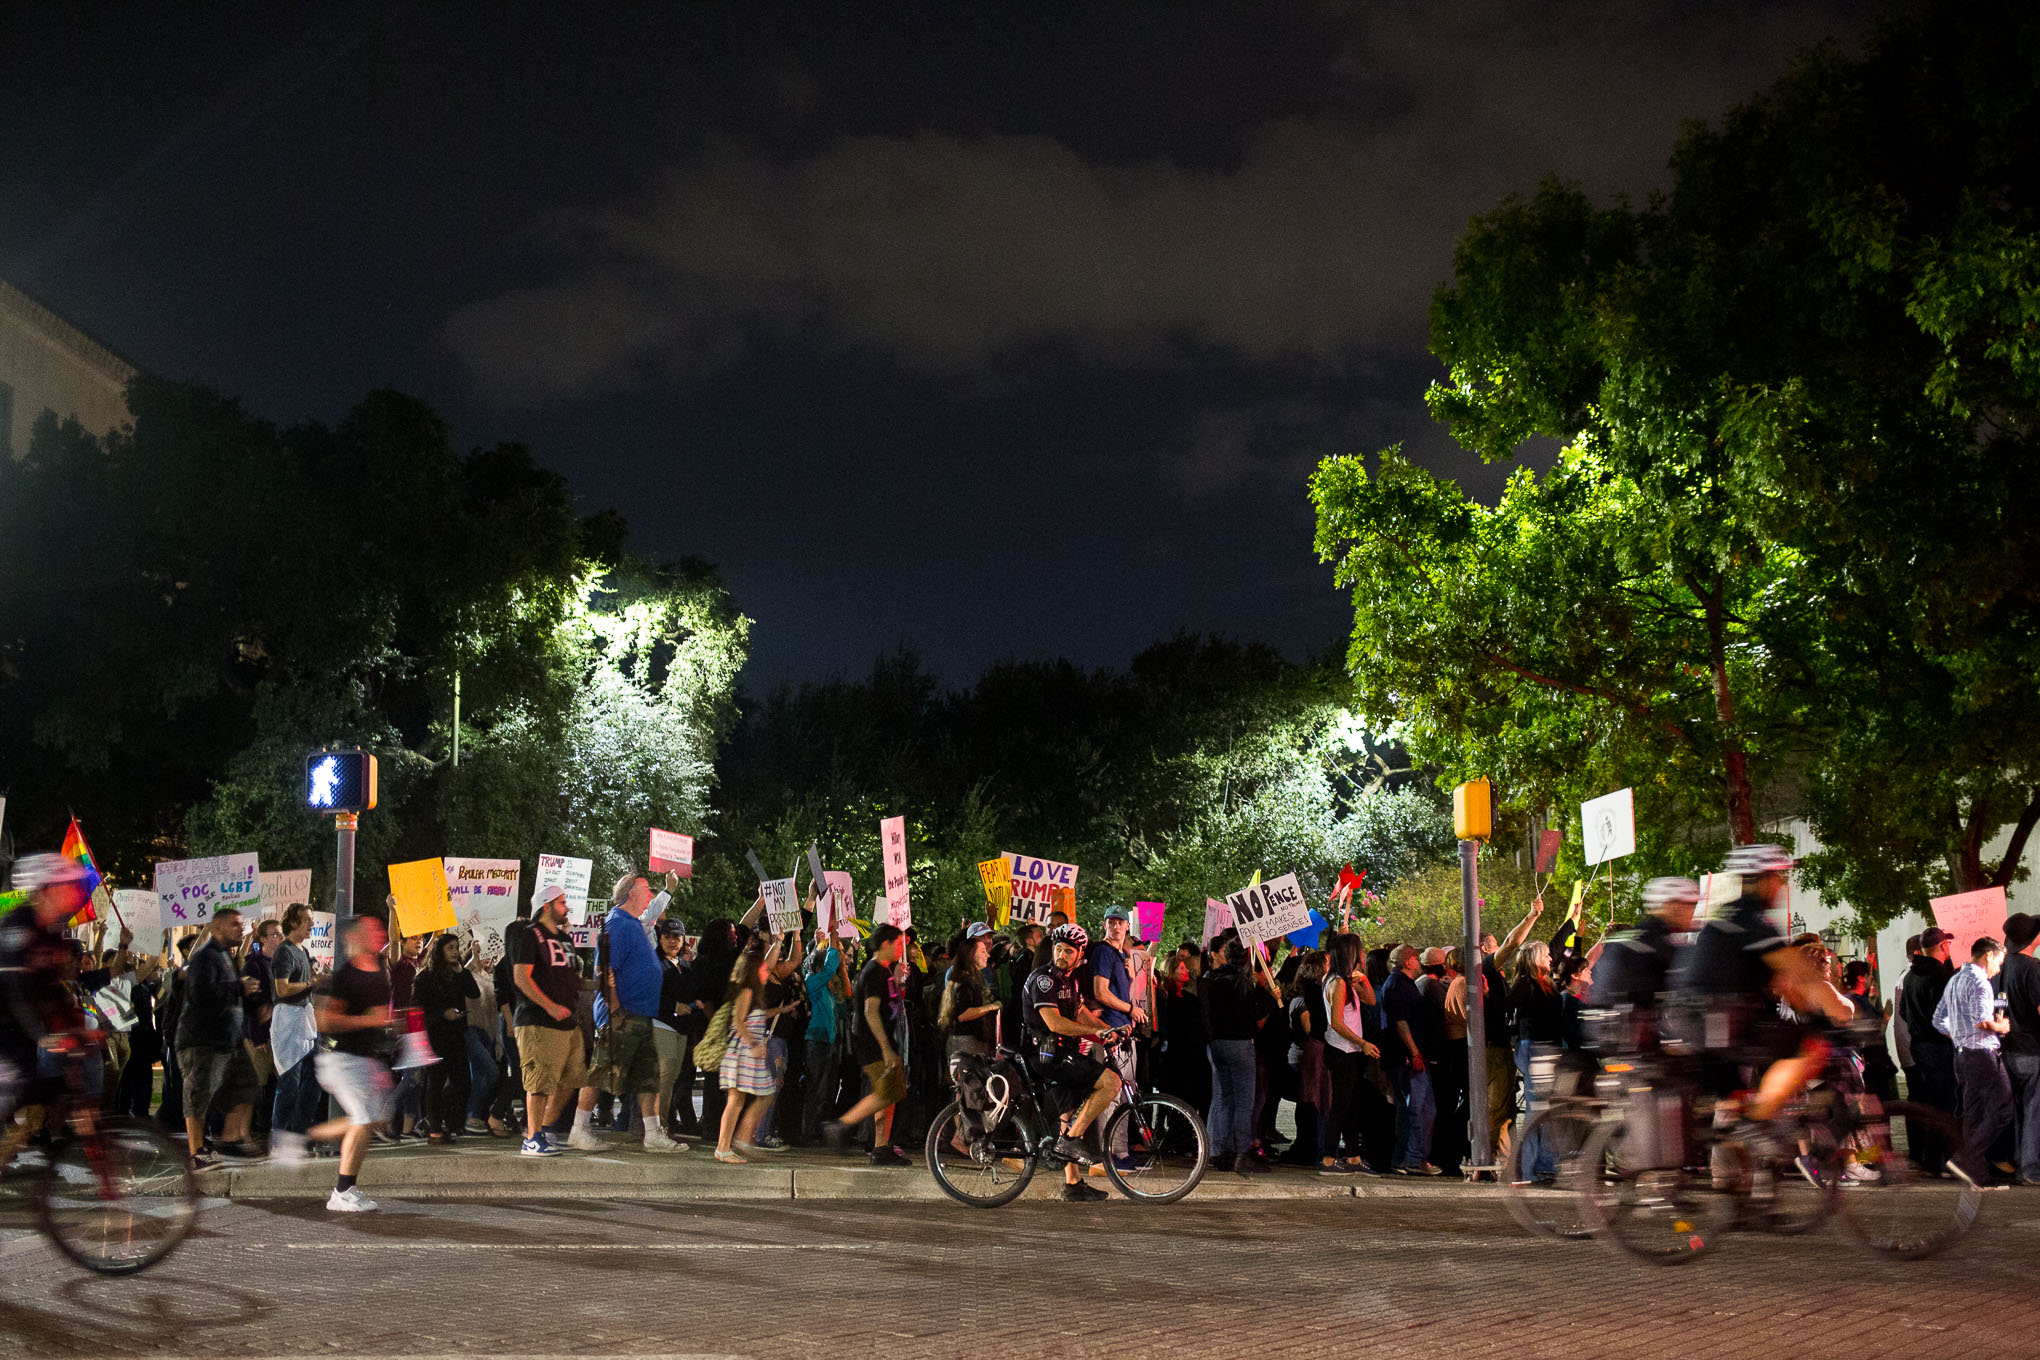 Hundreds of people march along West Commerce Street in protest of Trump.